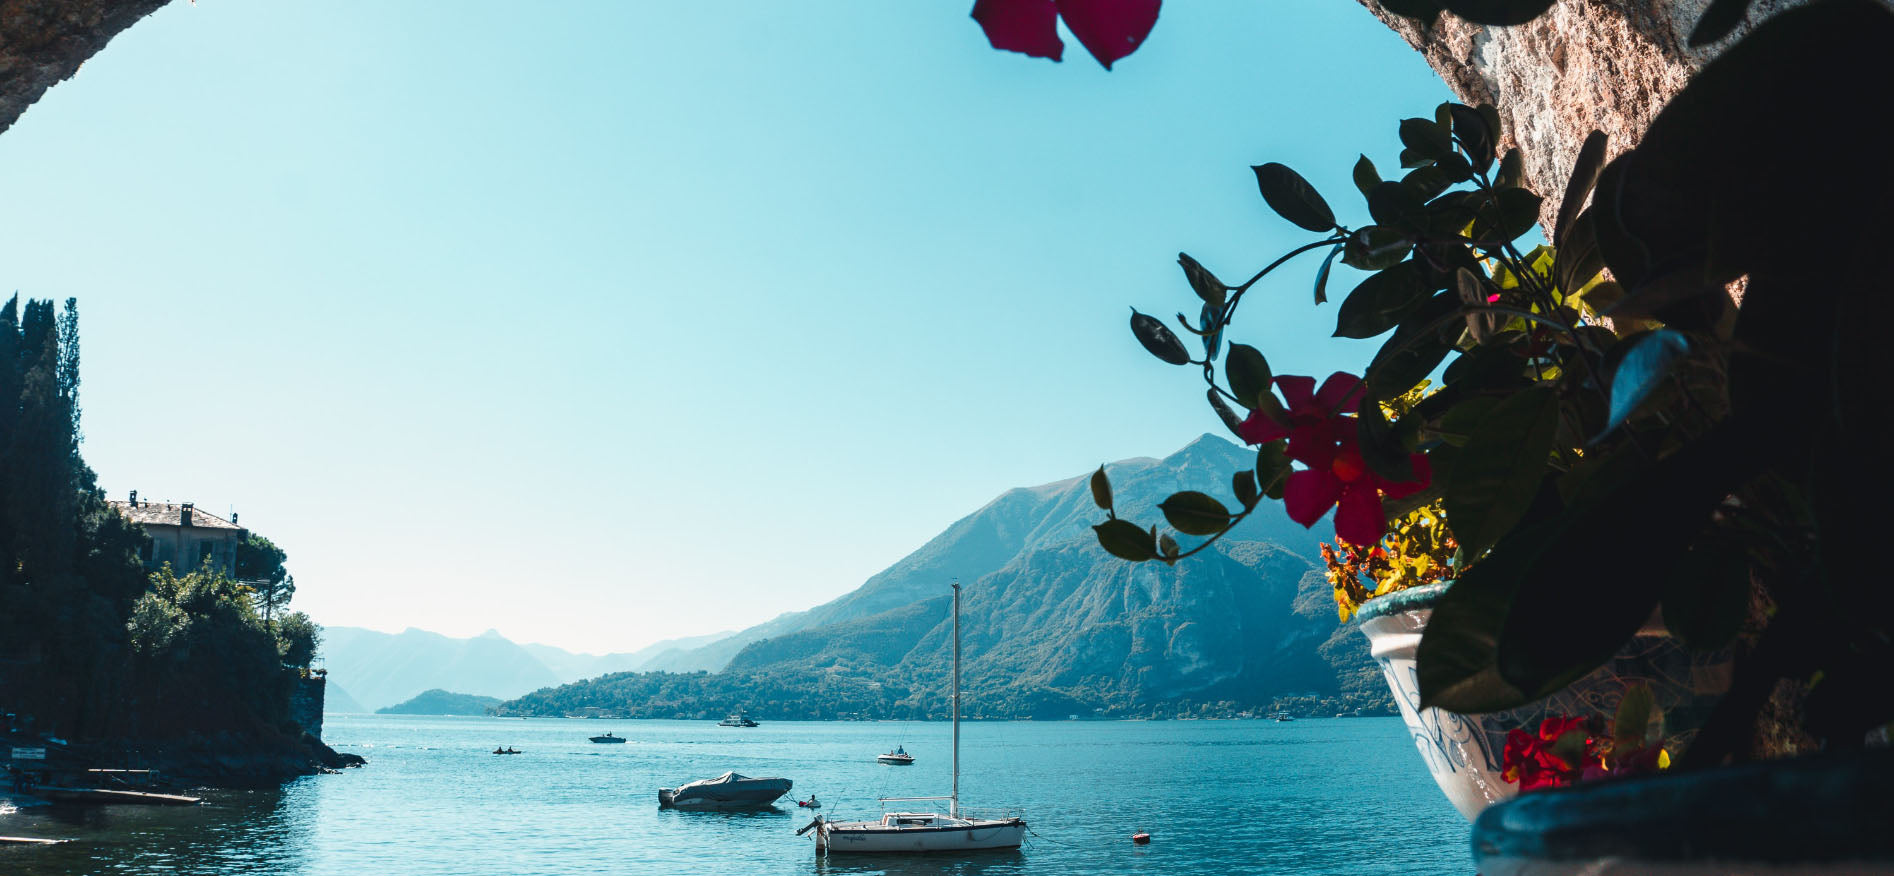 7 TIPS ON WHERE TO GO IN 2021 IN LAKE COMO